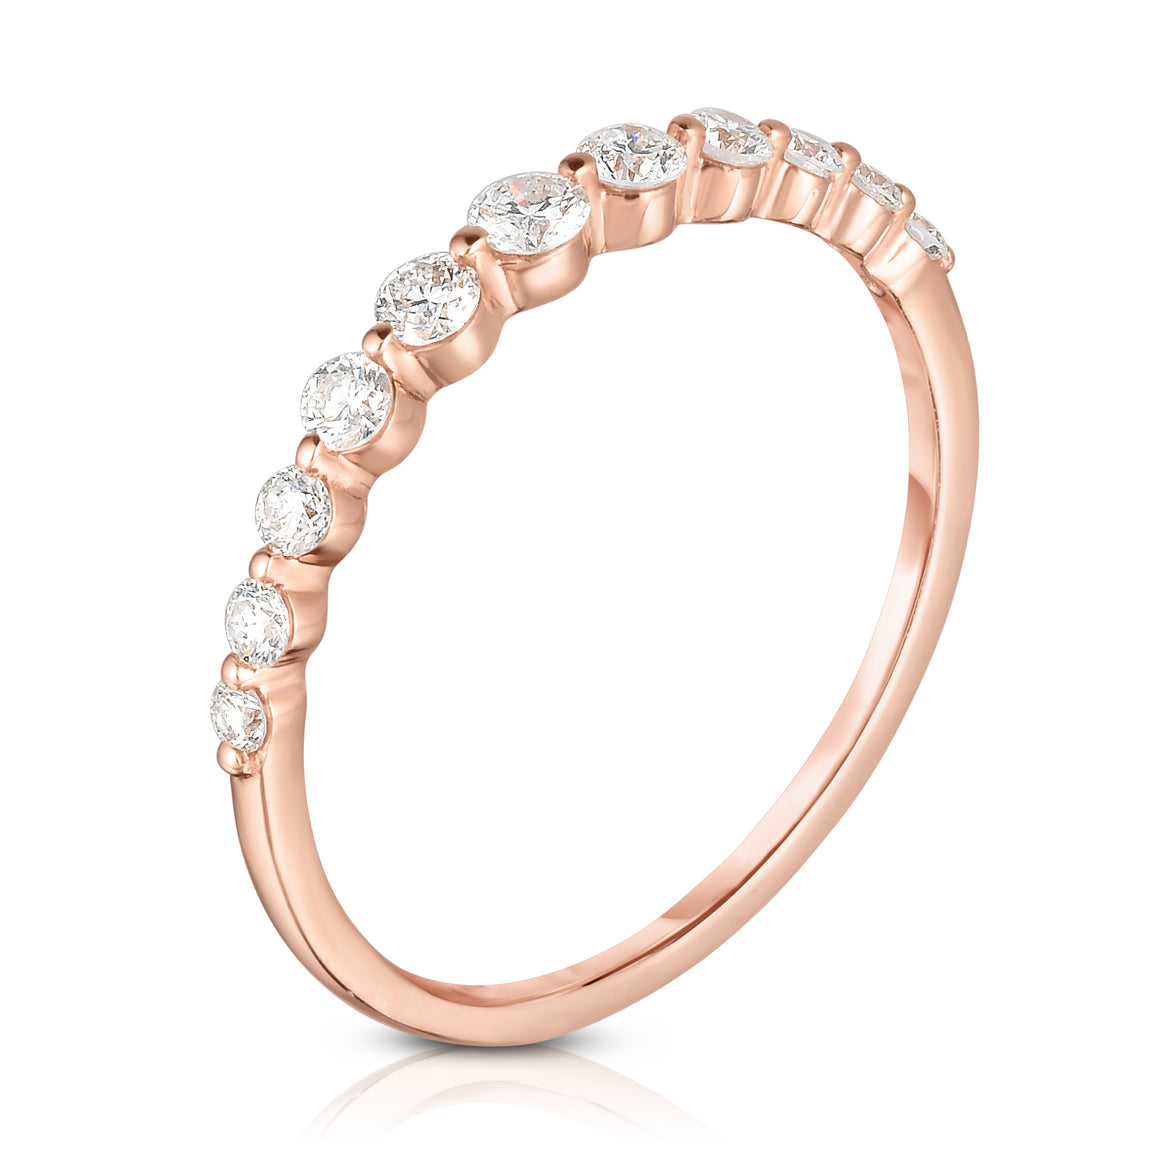 Graduated Shared Prong Eternity Band - ByURBAE